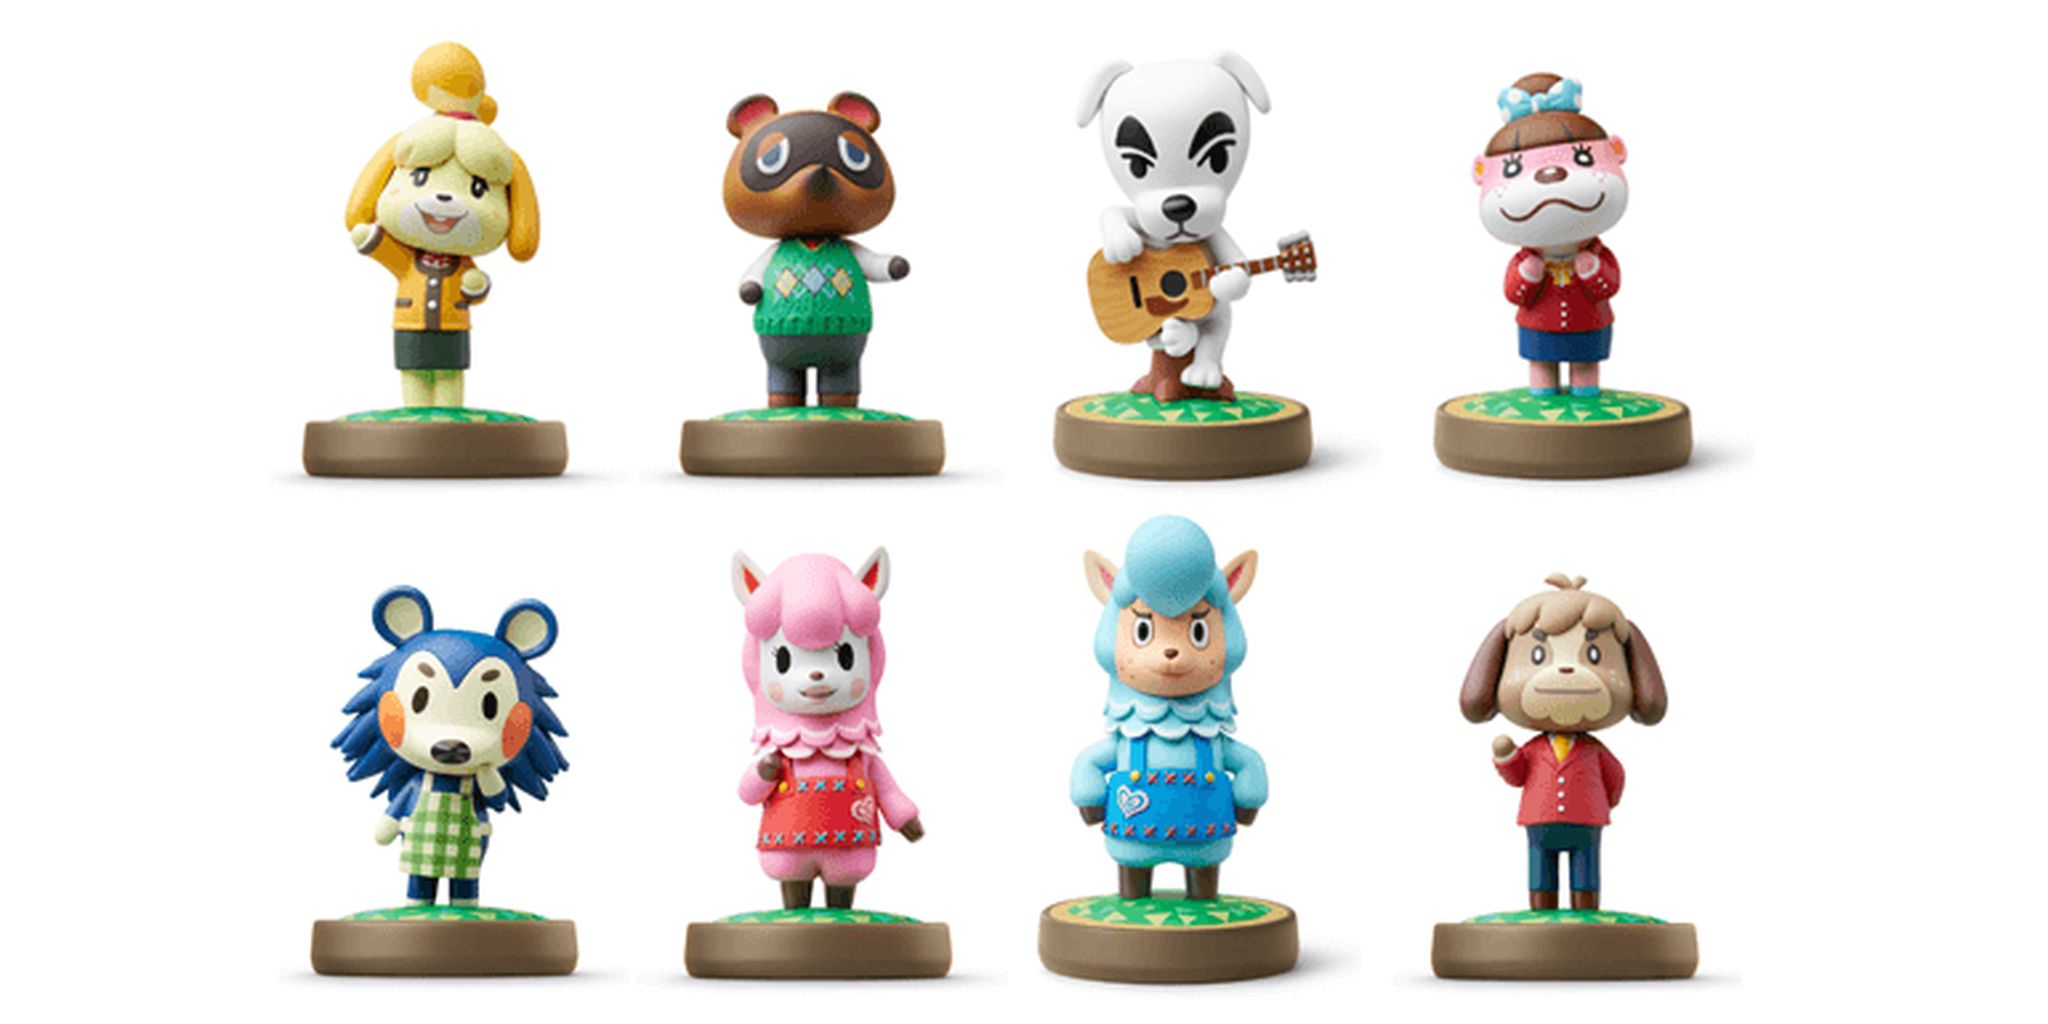 Amiibo Crossing You Can Now Use Animal Crossing Amiibo With The 3ds The Daily Dot